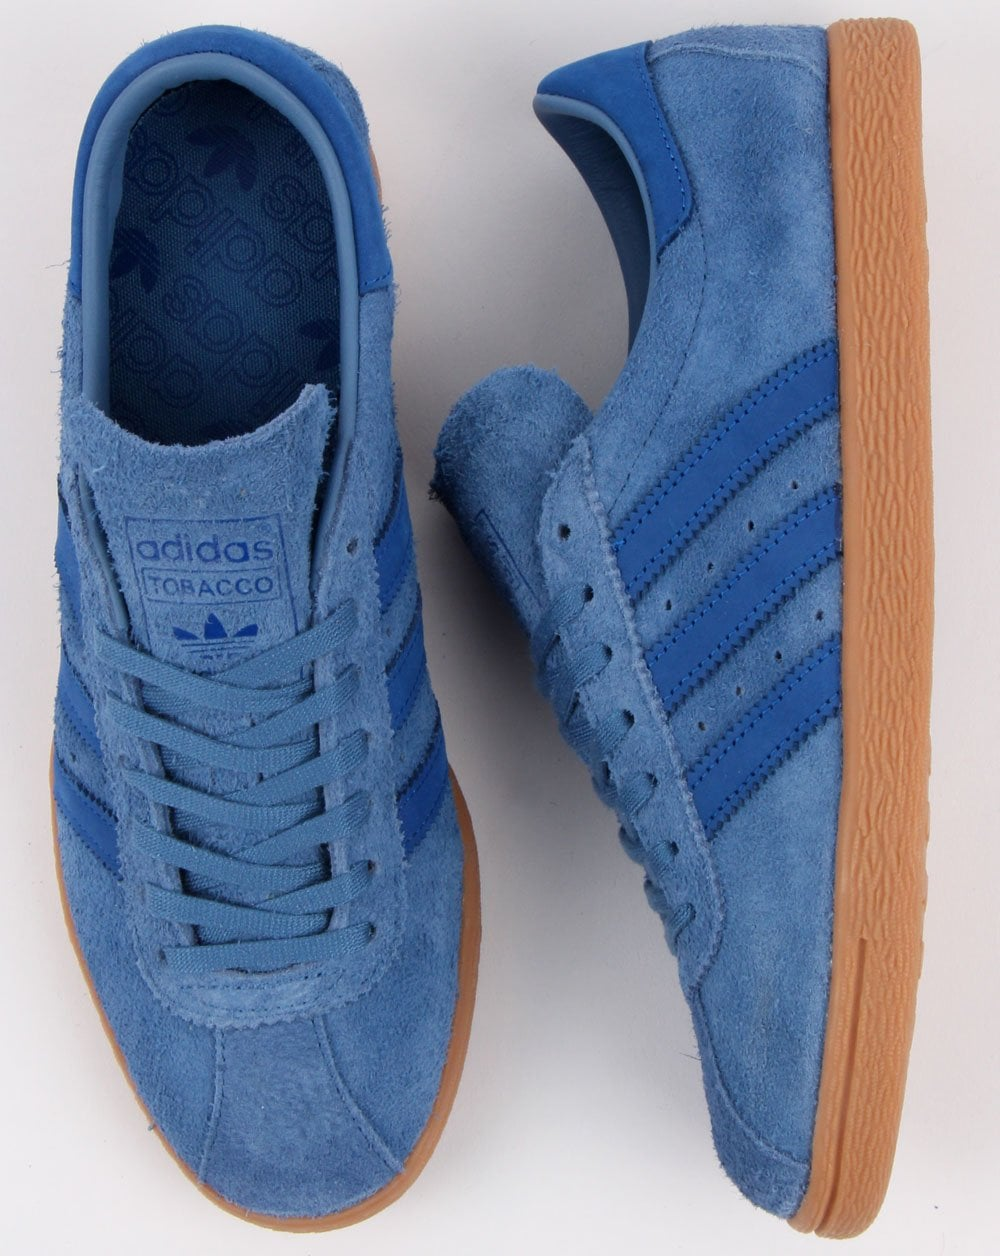 adidas Trainers Adidas Tobacco Trainers Trace Royal collegiate Royal 056c3bd75